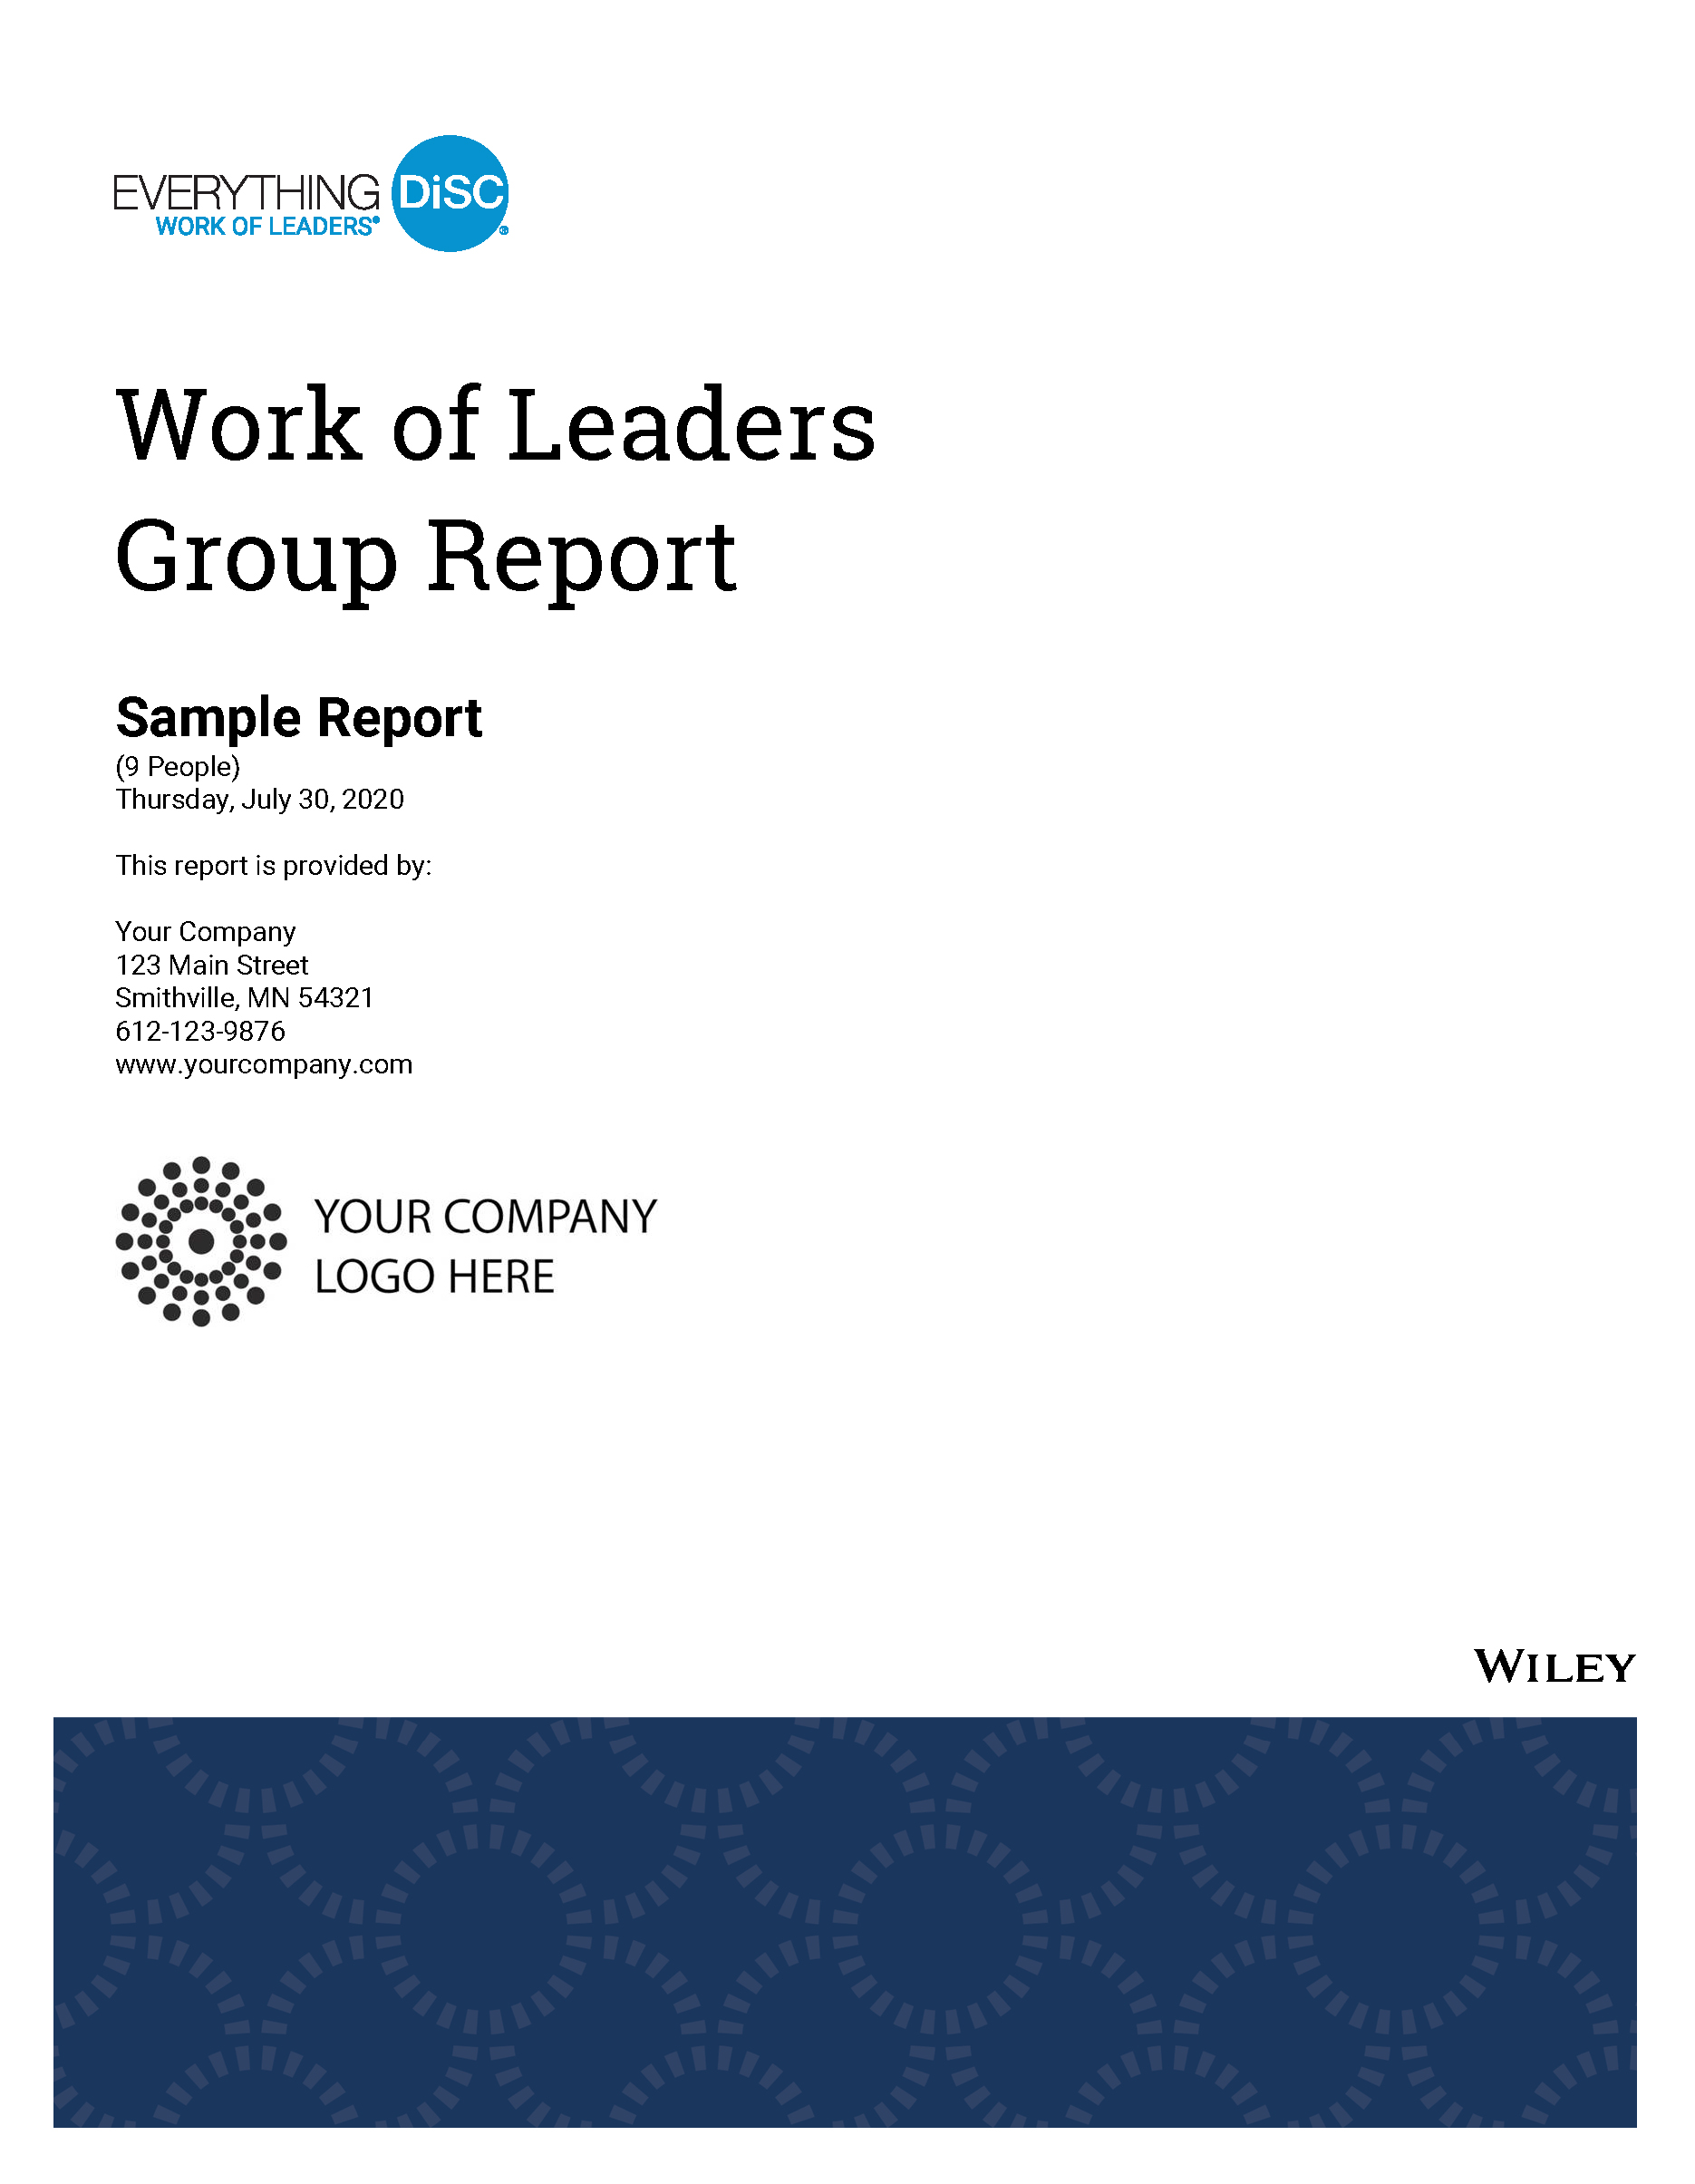 Everything DiSC Work of Leaders Group Sample Report Cover Image